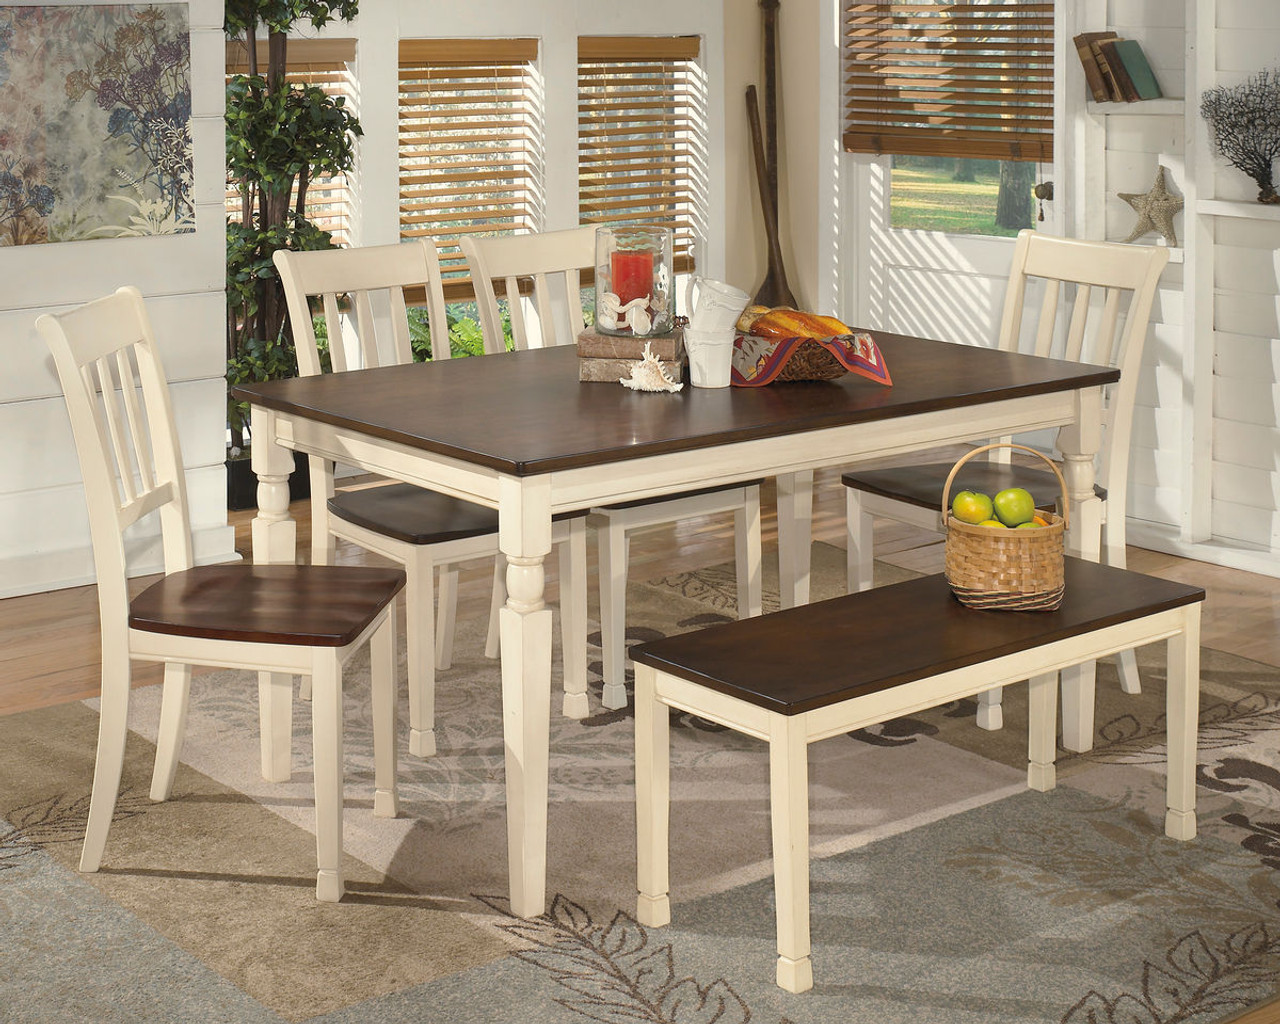 Ashley Whitesburg 6 Pc Rectangular Dining Room Table 4 Side Chairs Bench On Sale At Furniture And Mattress Warehouse Serving Holland Mi